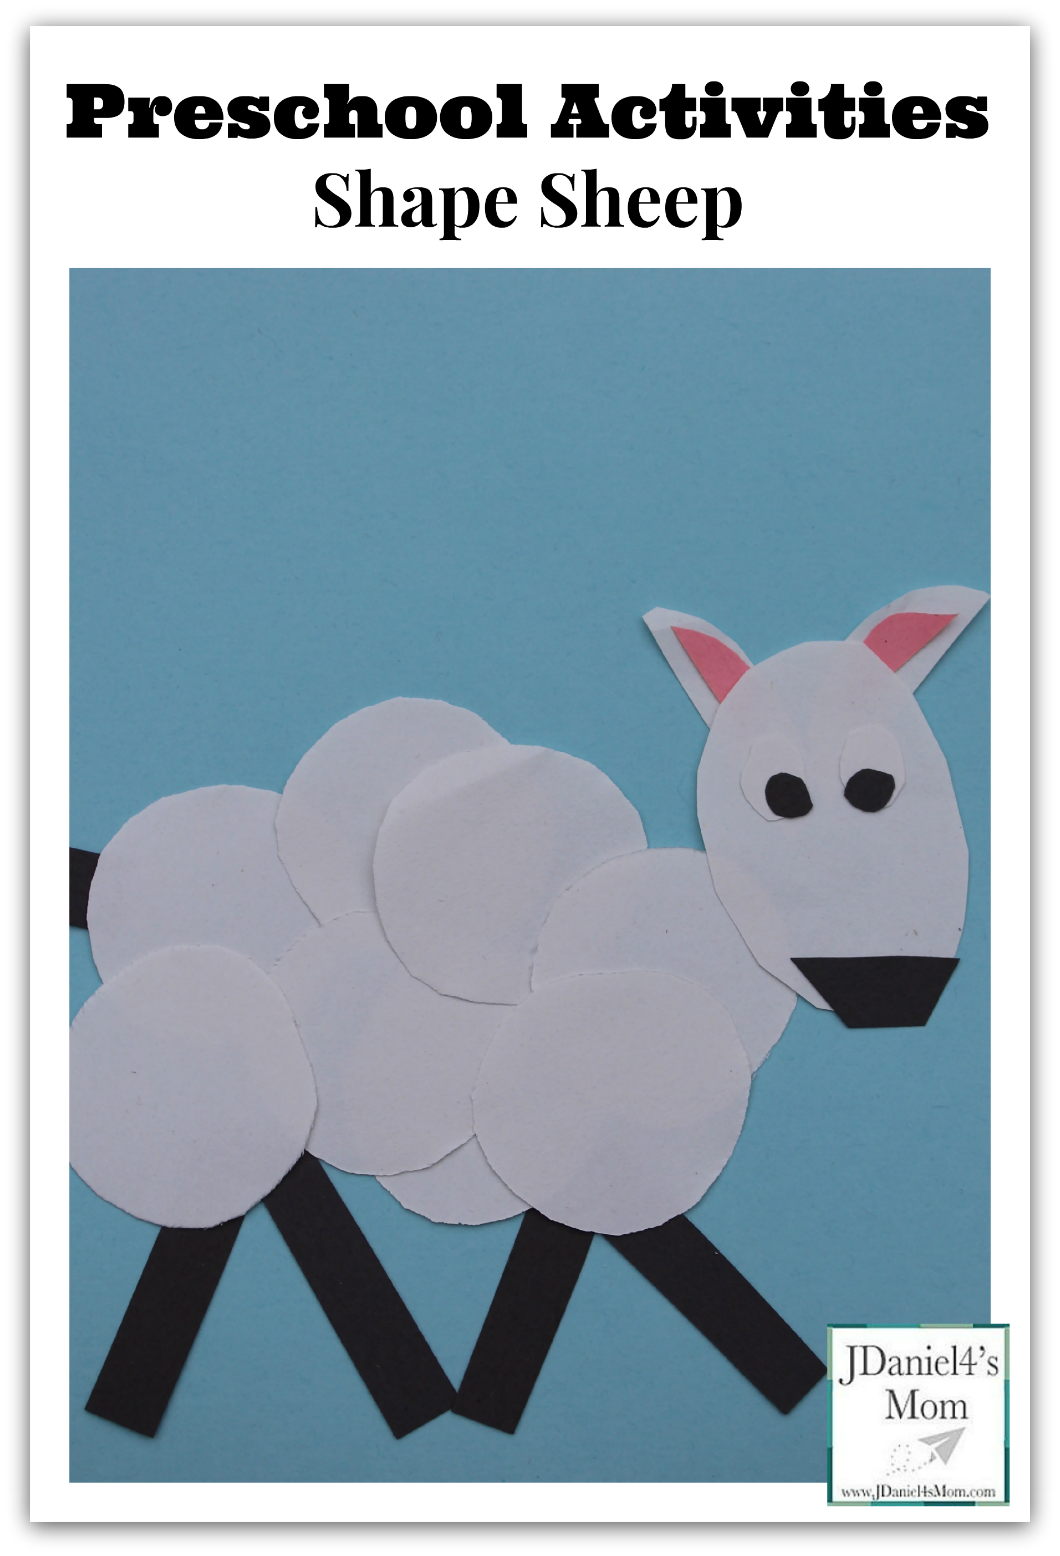 Preschool Activities- Shape Sheep